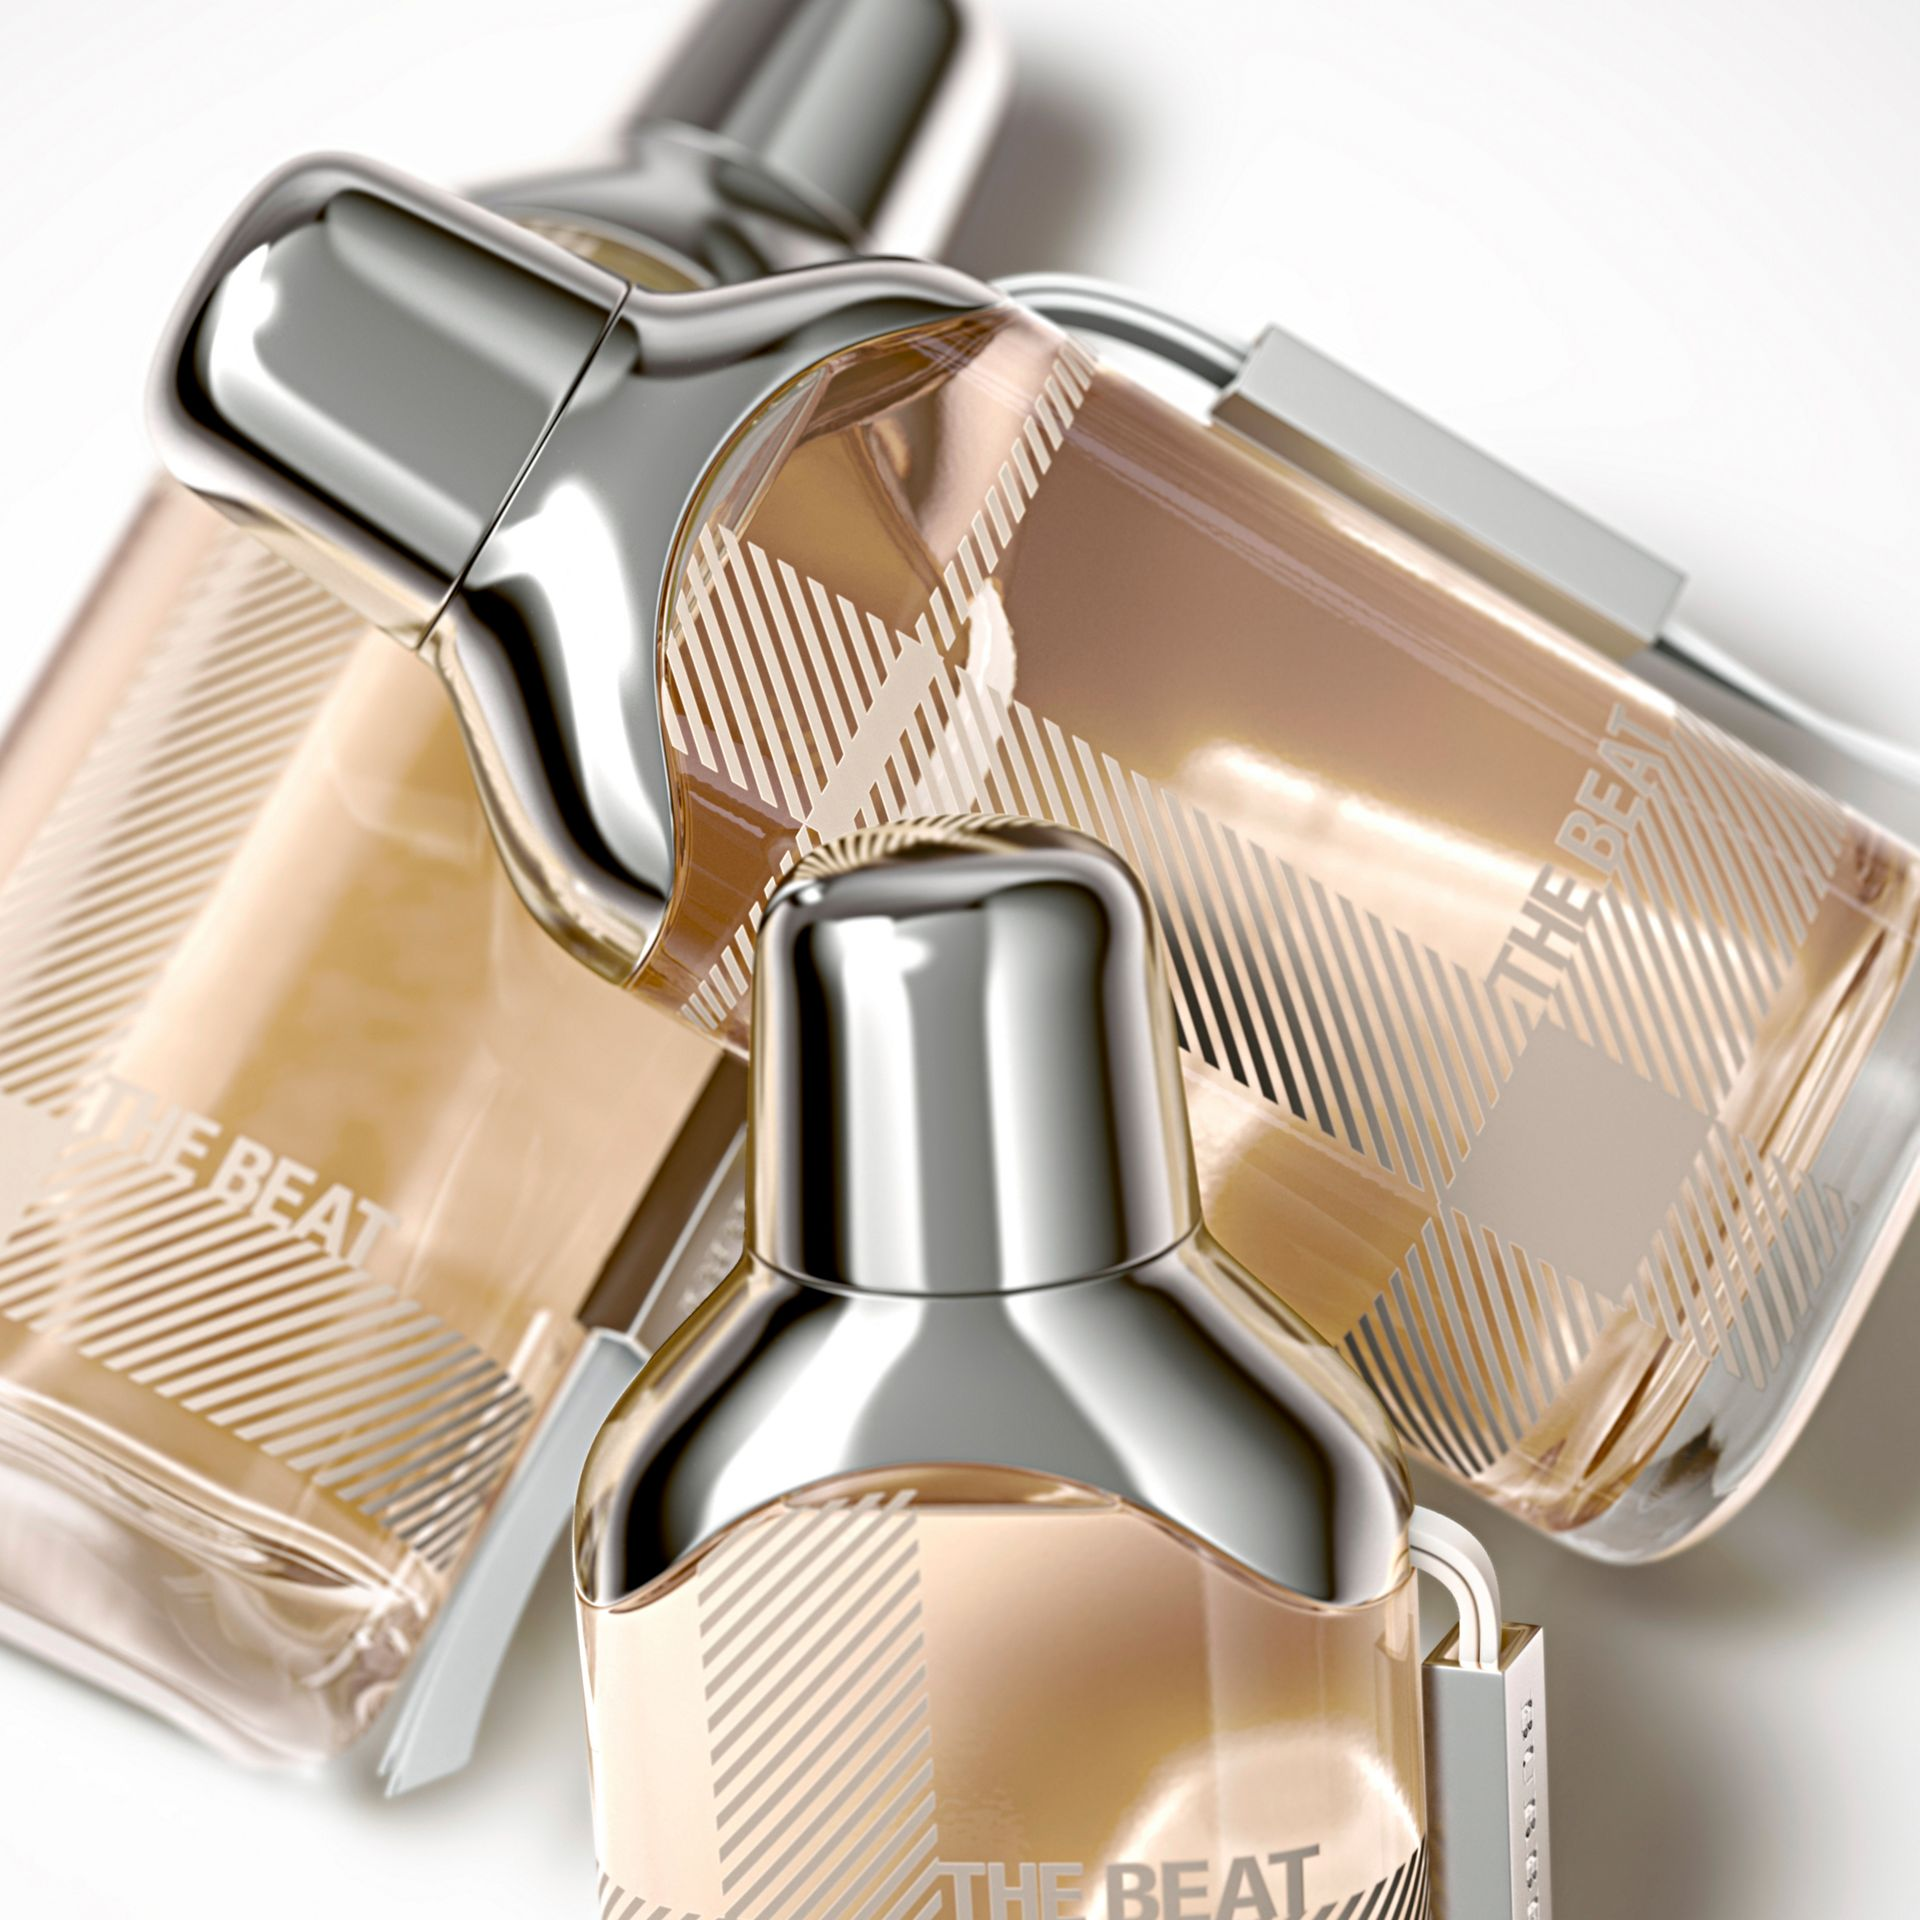 Burberry The Beat For Women Eau De Parfum 30ml - Women | Burberry - gallery image 2